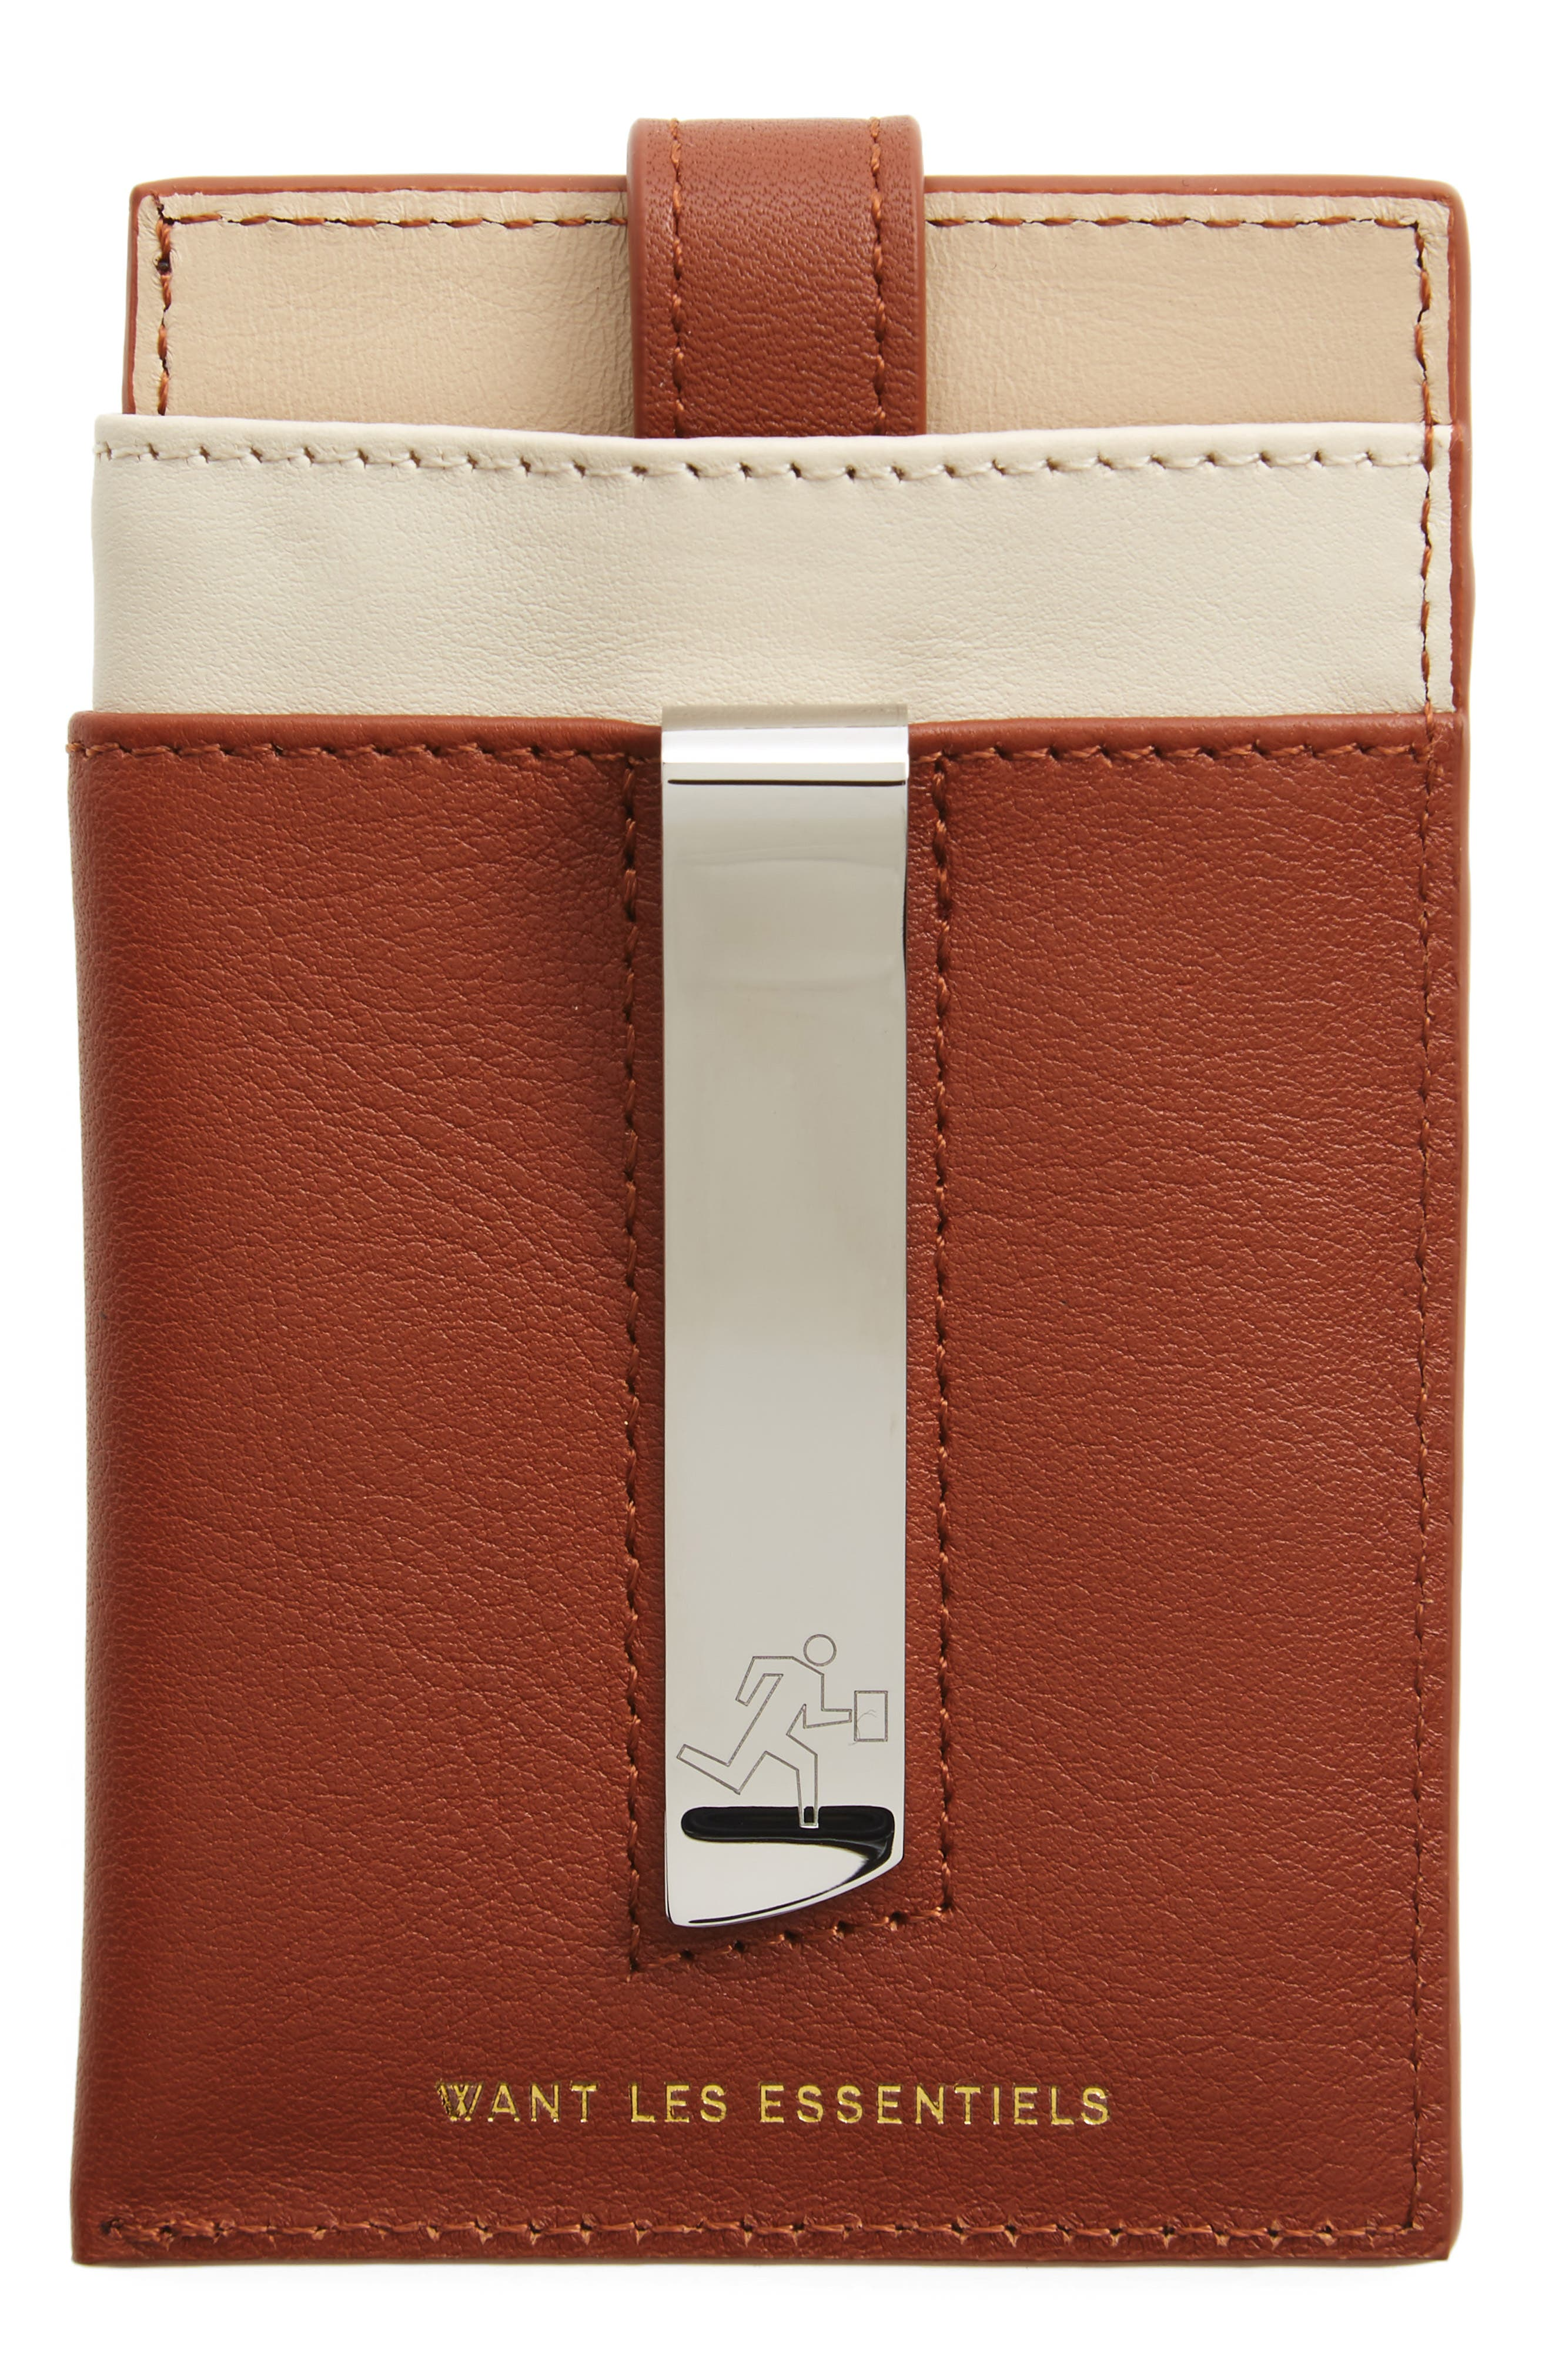 Alternate Image 1 Selected - WANT LES ESSENTIELS 'Kennedy' Leather Money Clip Card Case